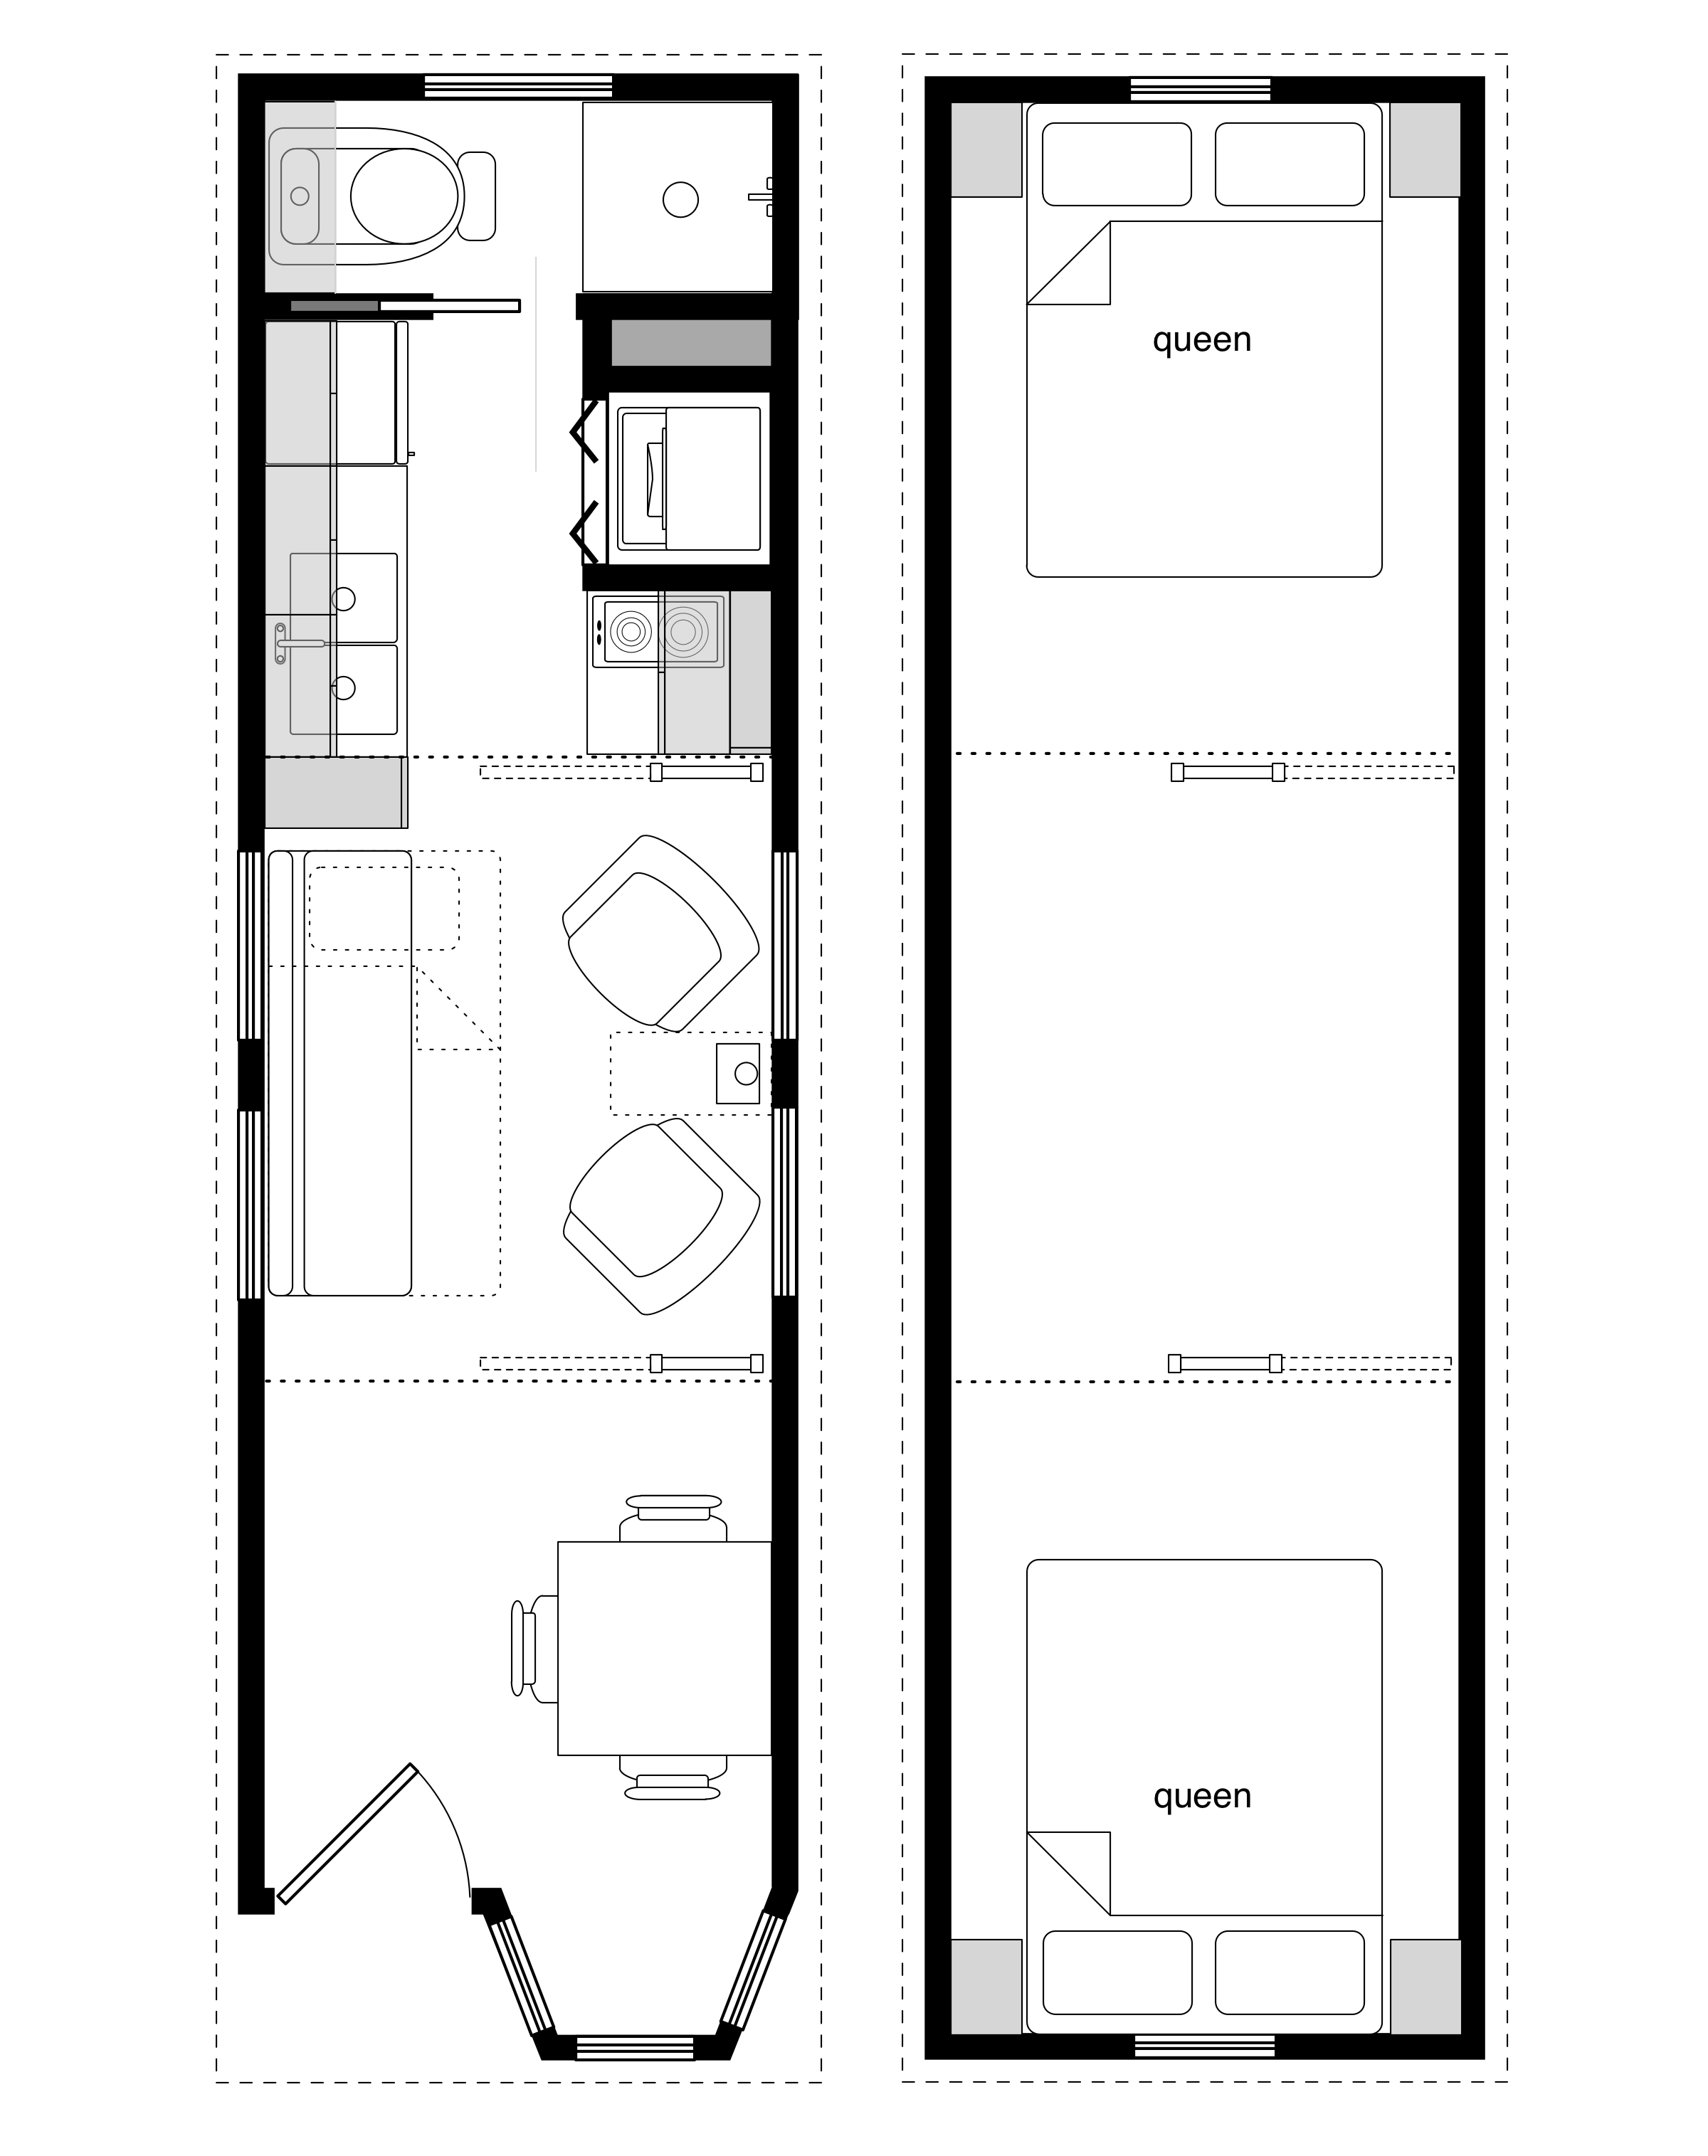 Sample Floor Plans for the 828 Coastal Cottage Tiny House